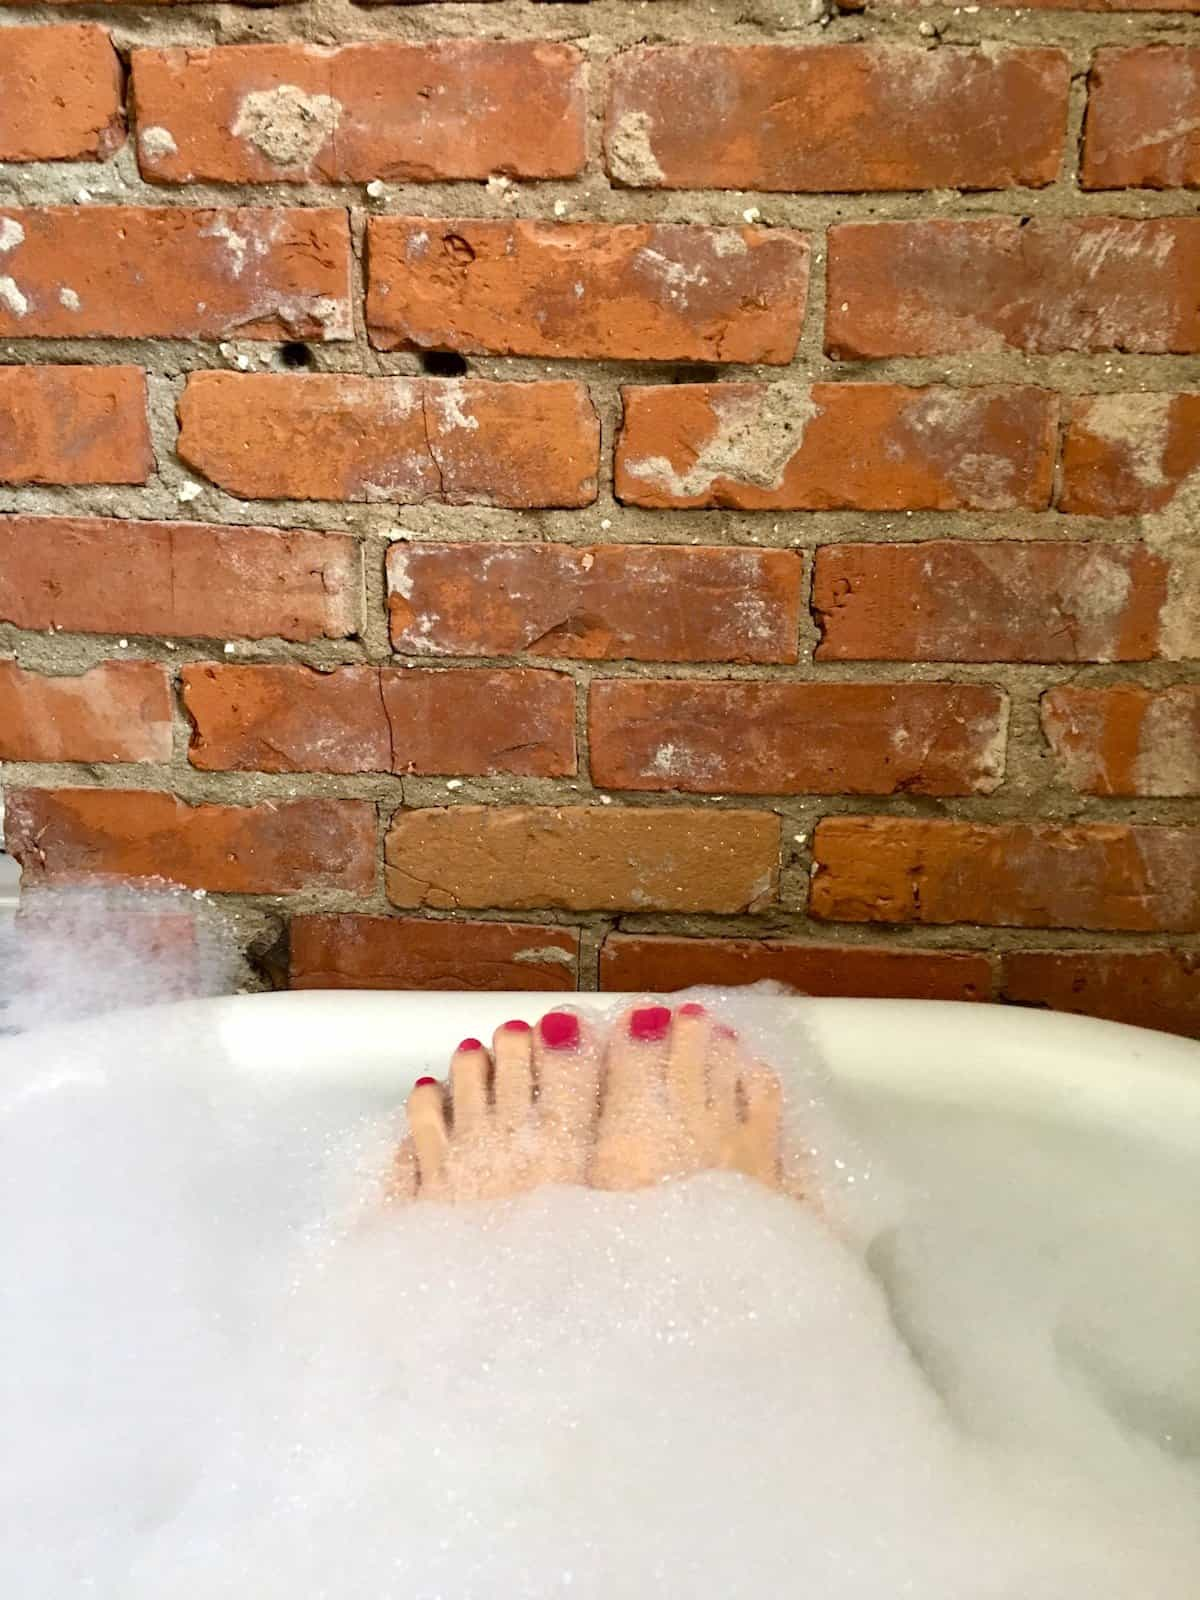 Bubble bath edge with soapy toes peeking out against a background of a brick chimney